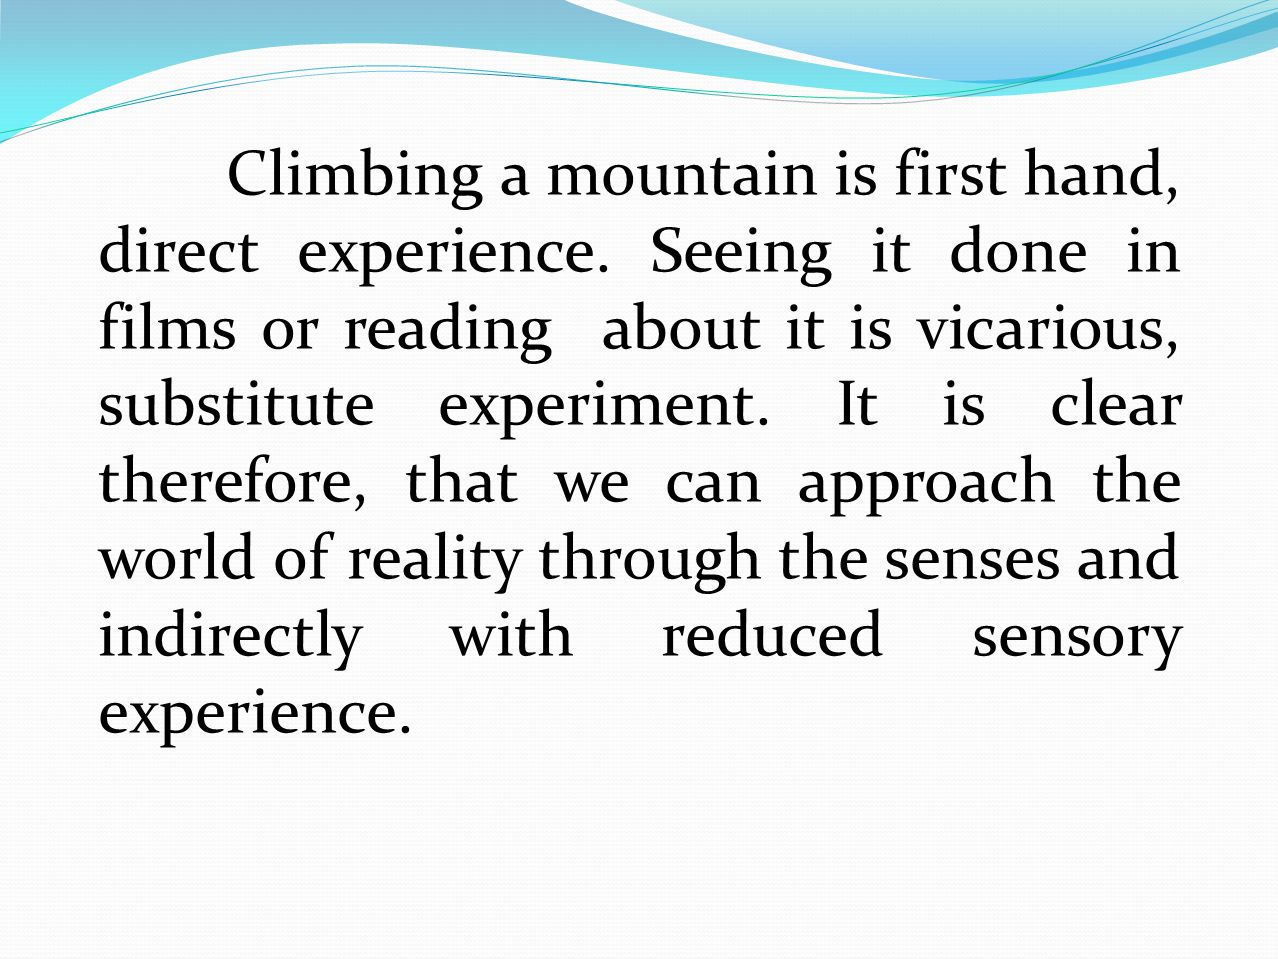 Climbing a mountain is first hand, direct experience